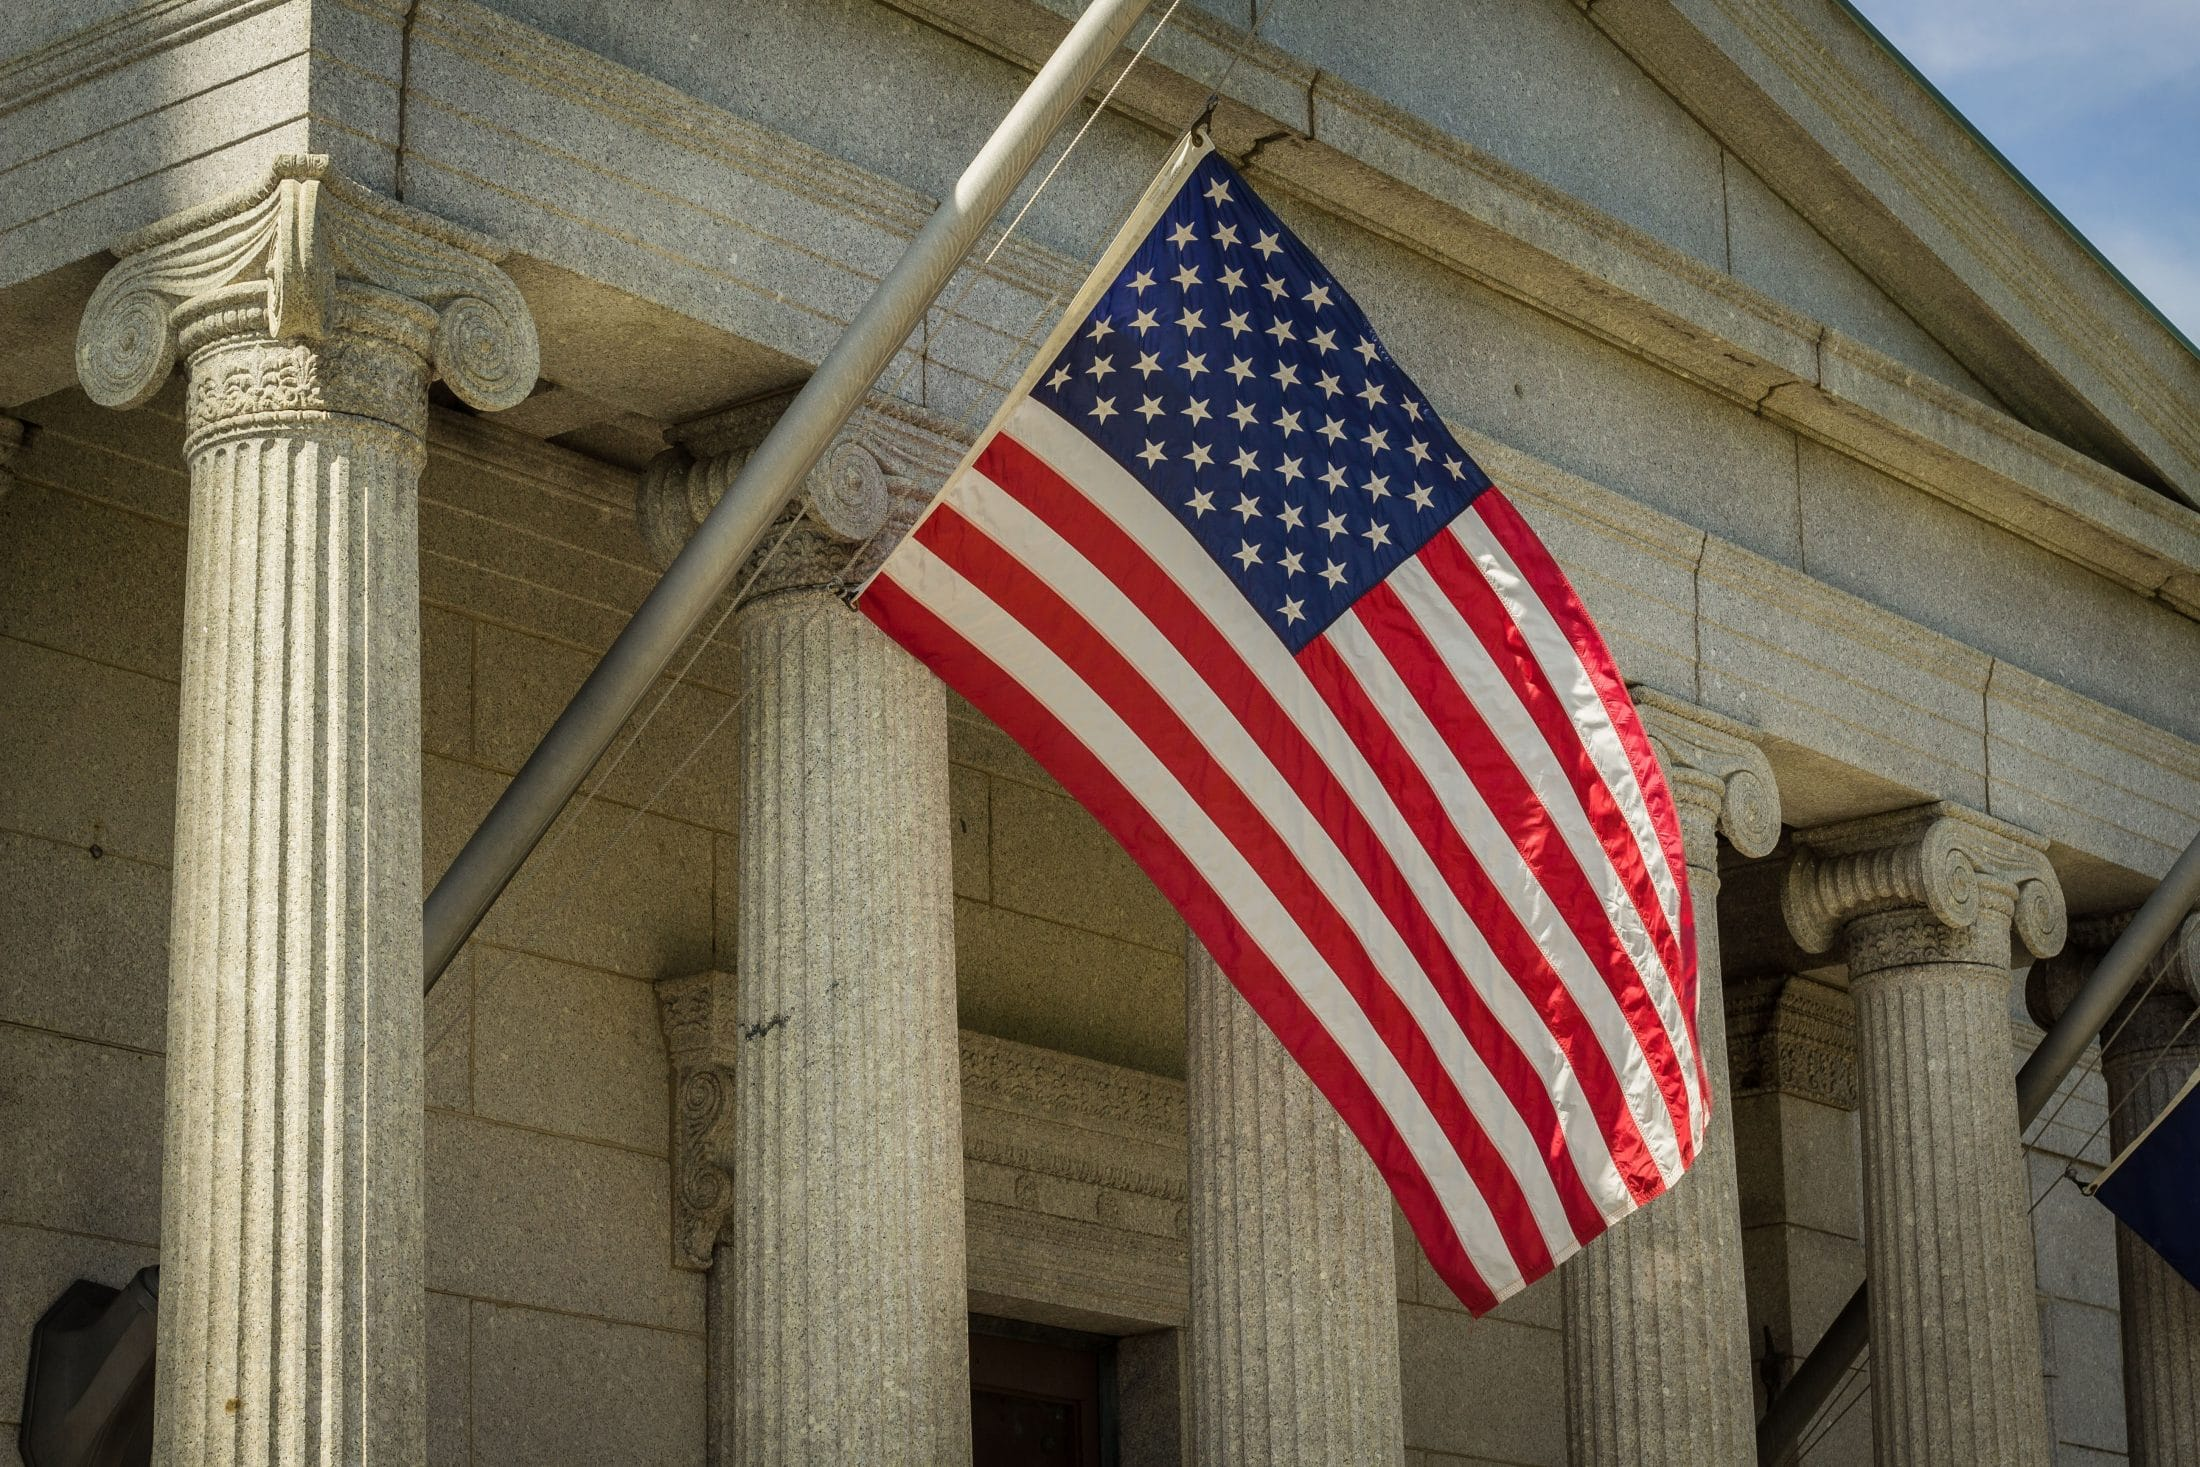 US flag hanging outside of government building